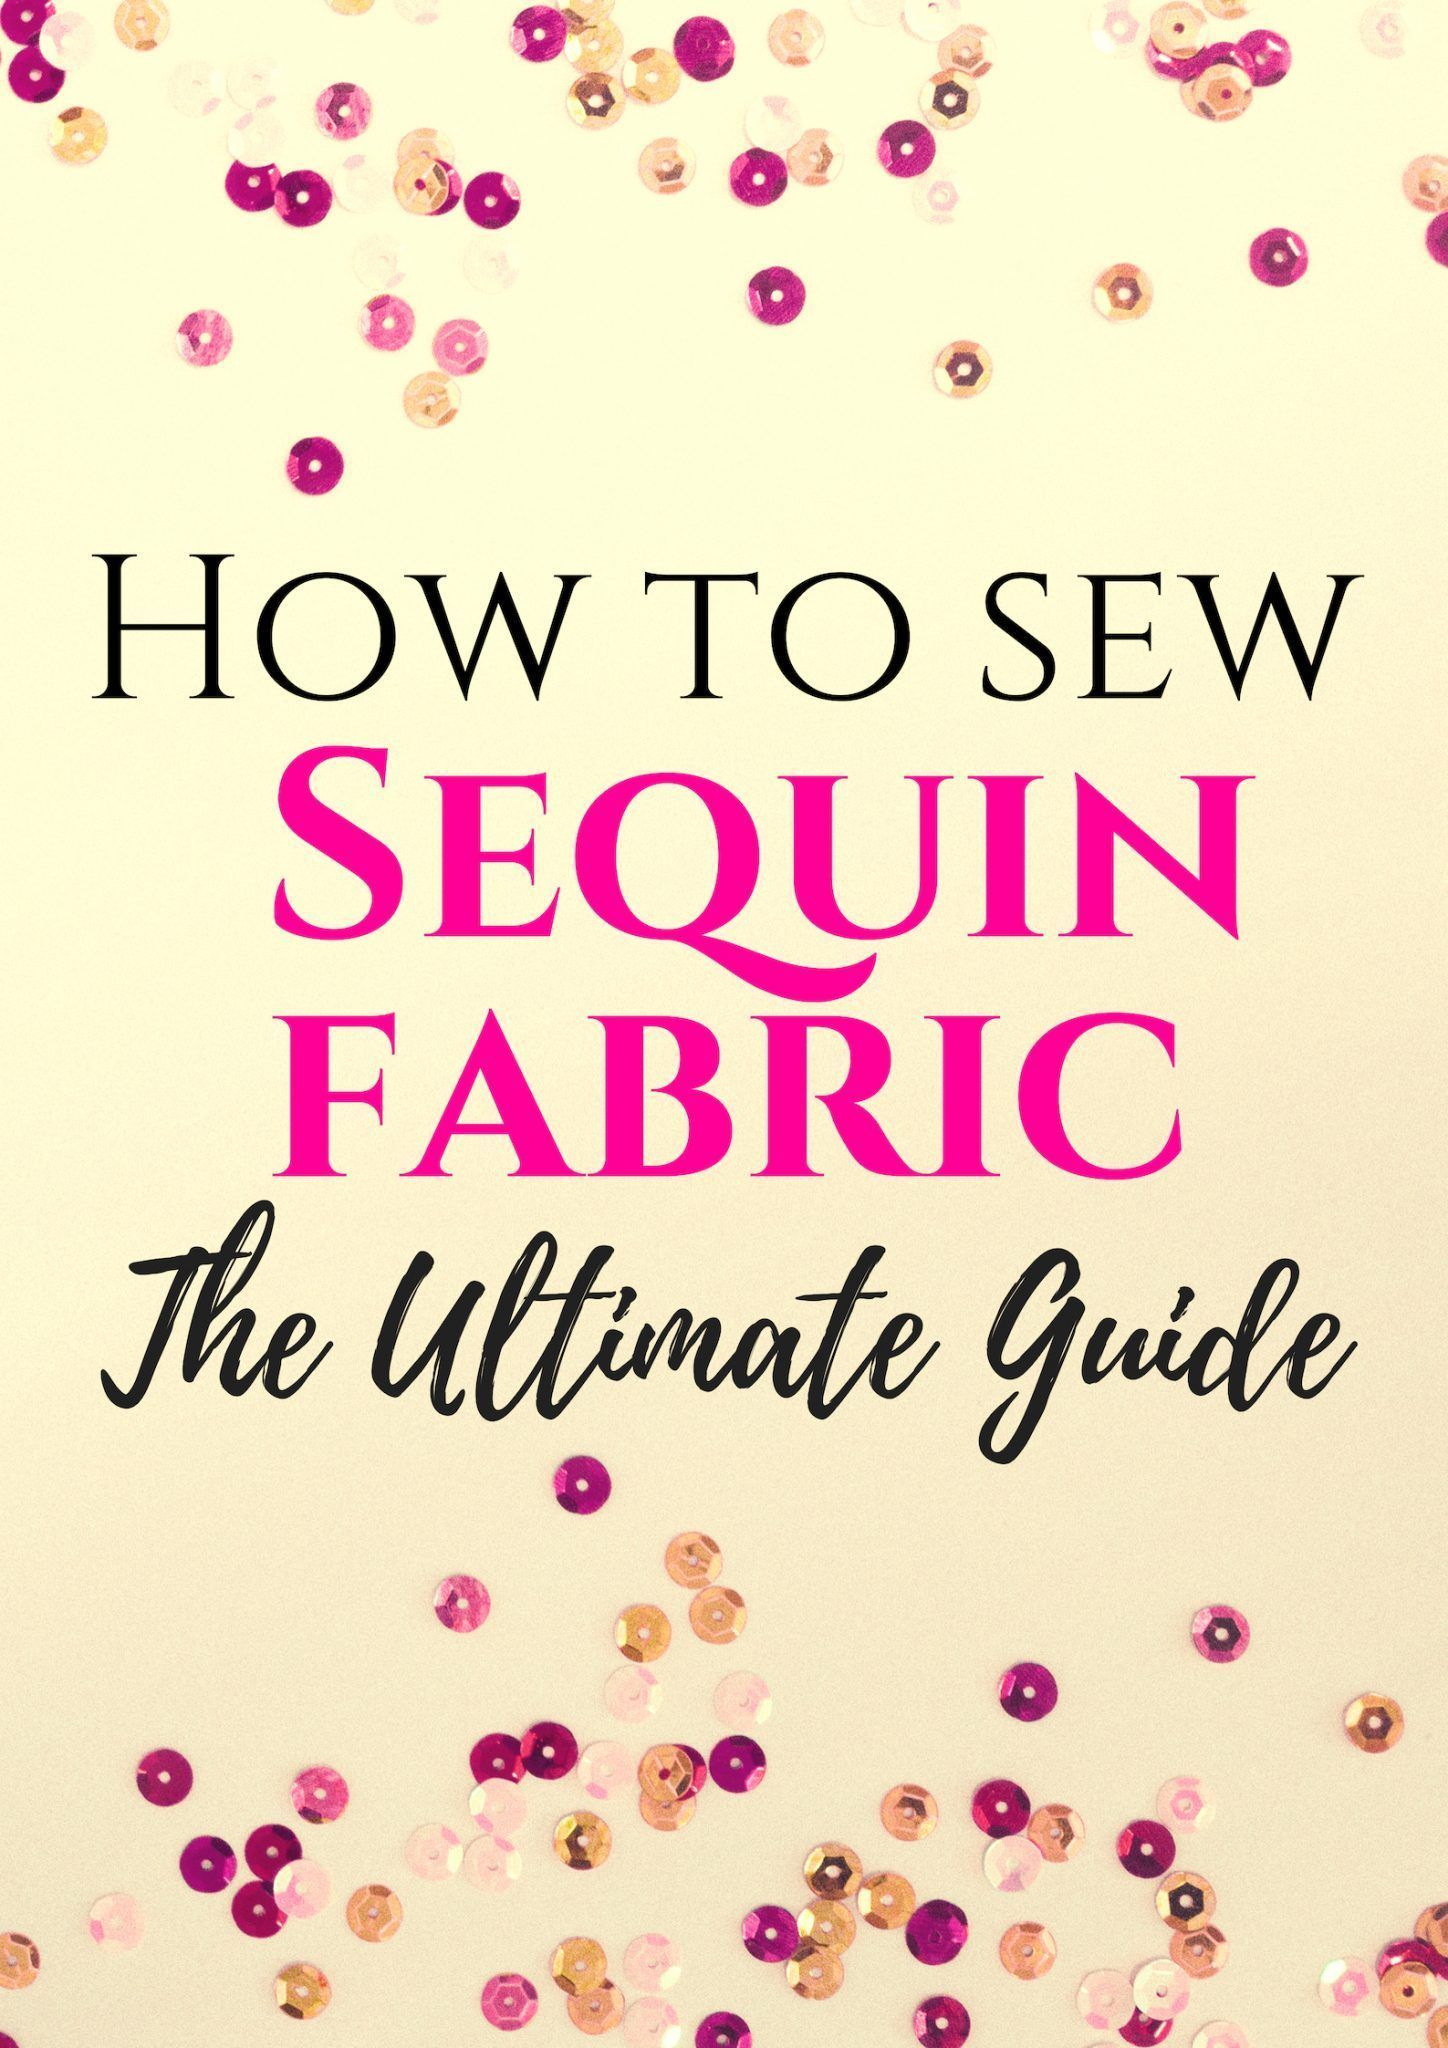 How to Sew Sequins The Ultimate Guide  Creative Fashion Blog Tips on how to sew sequin fabric This ultimate sewing guide will walk you through some sewing tips and hacks...